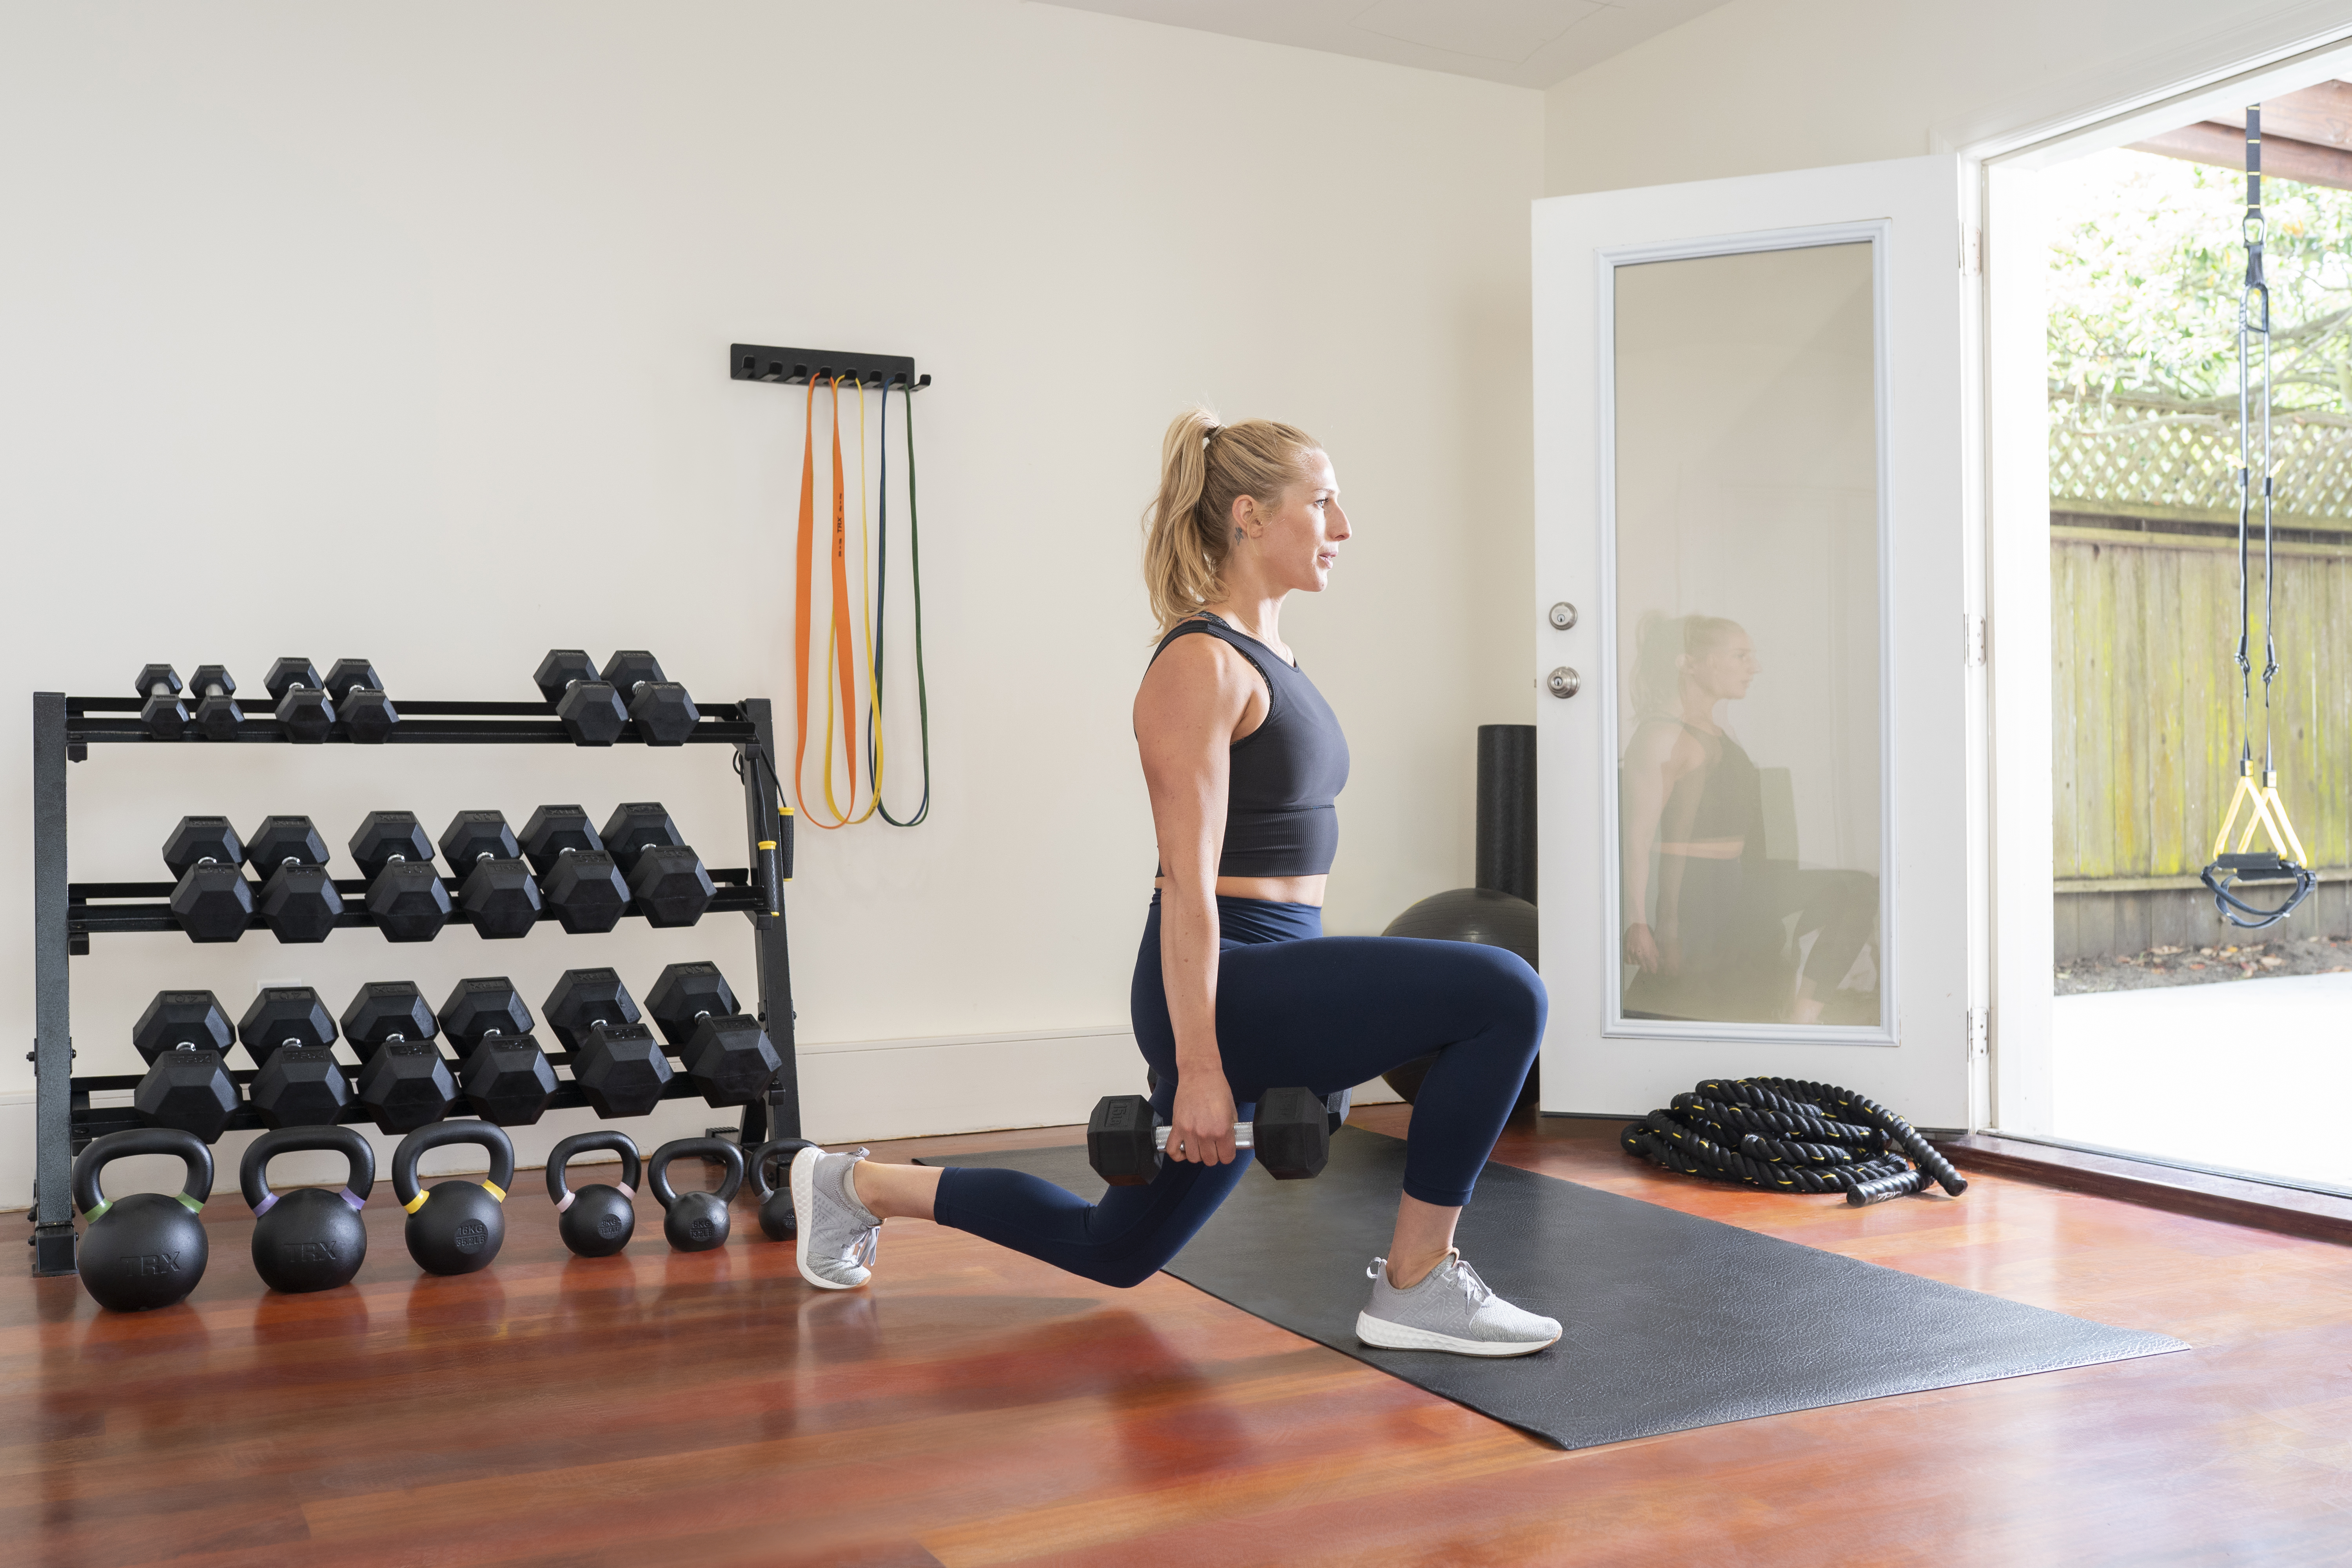 Blonde_woman_lunging_with_TRX_Dumbbells